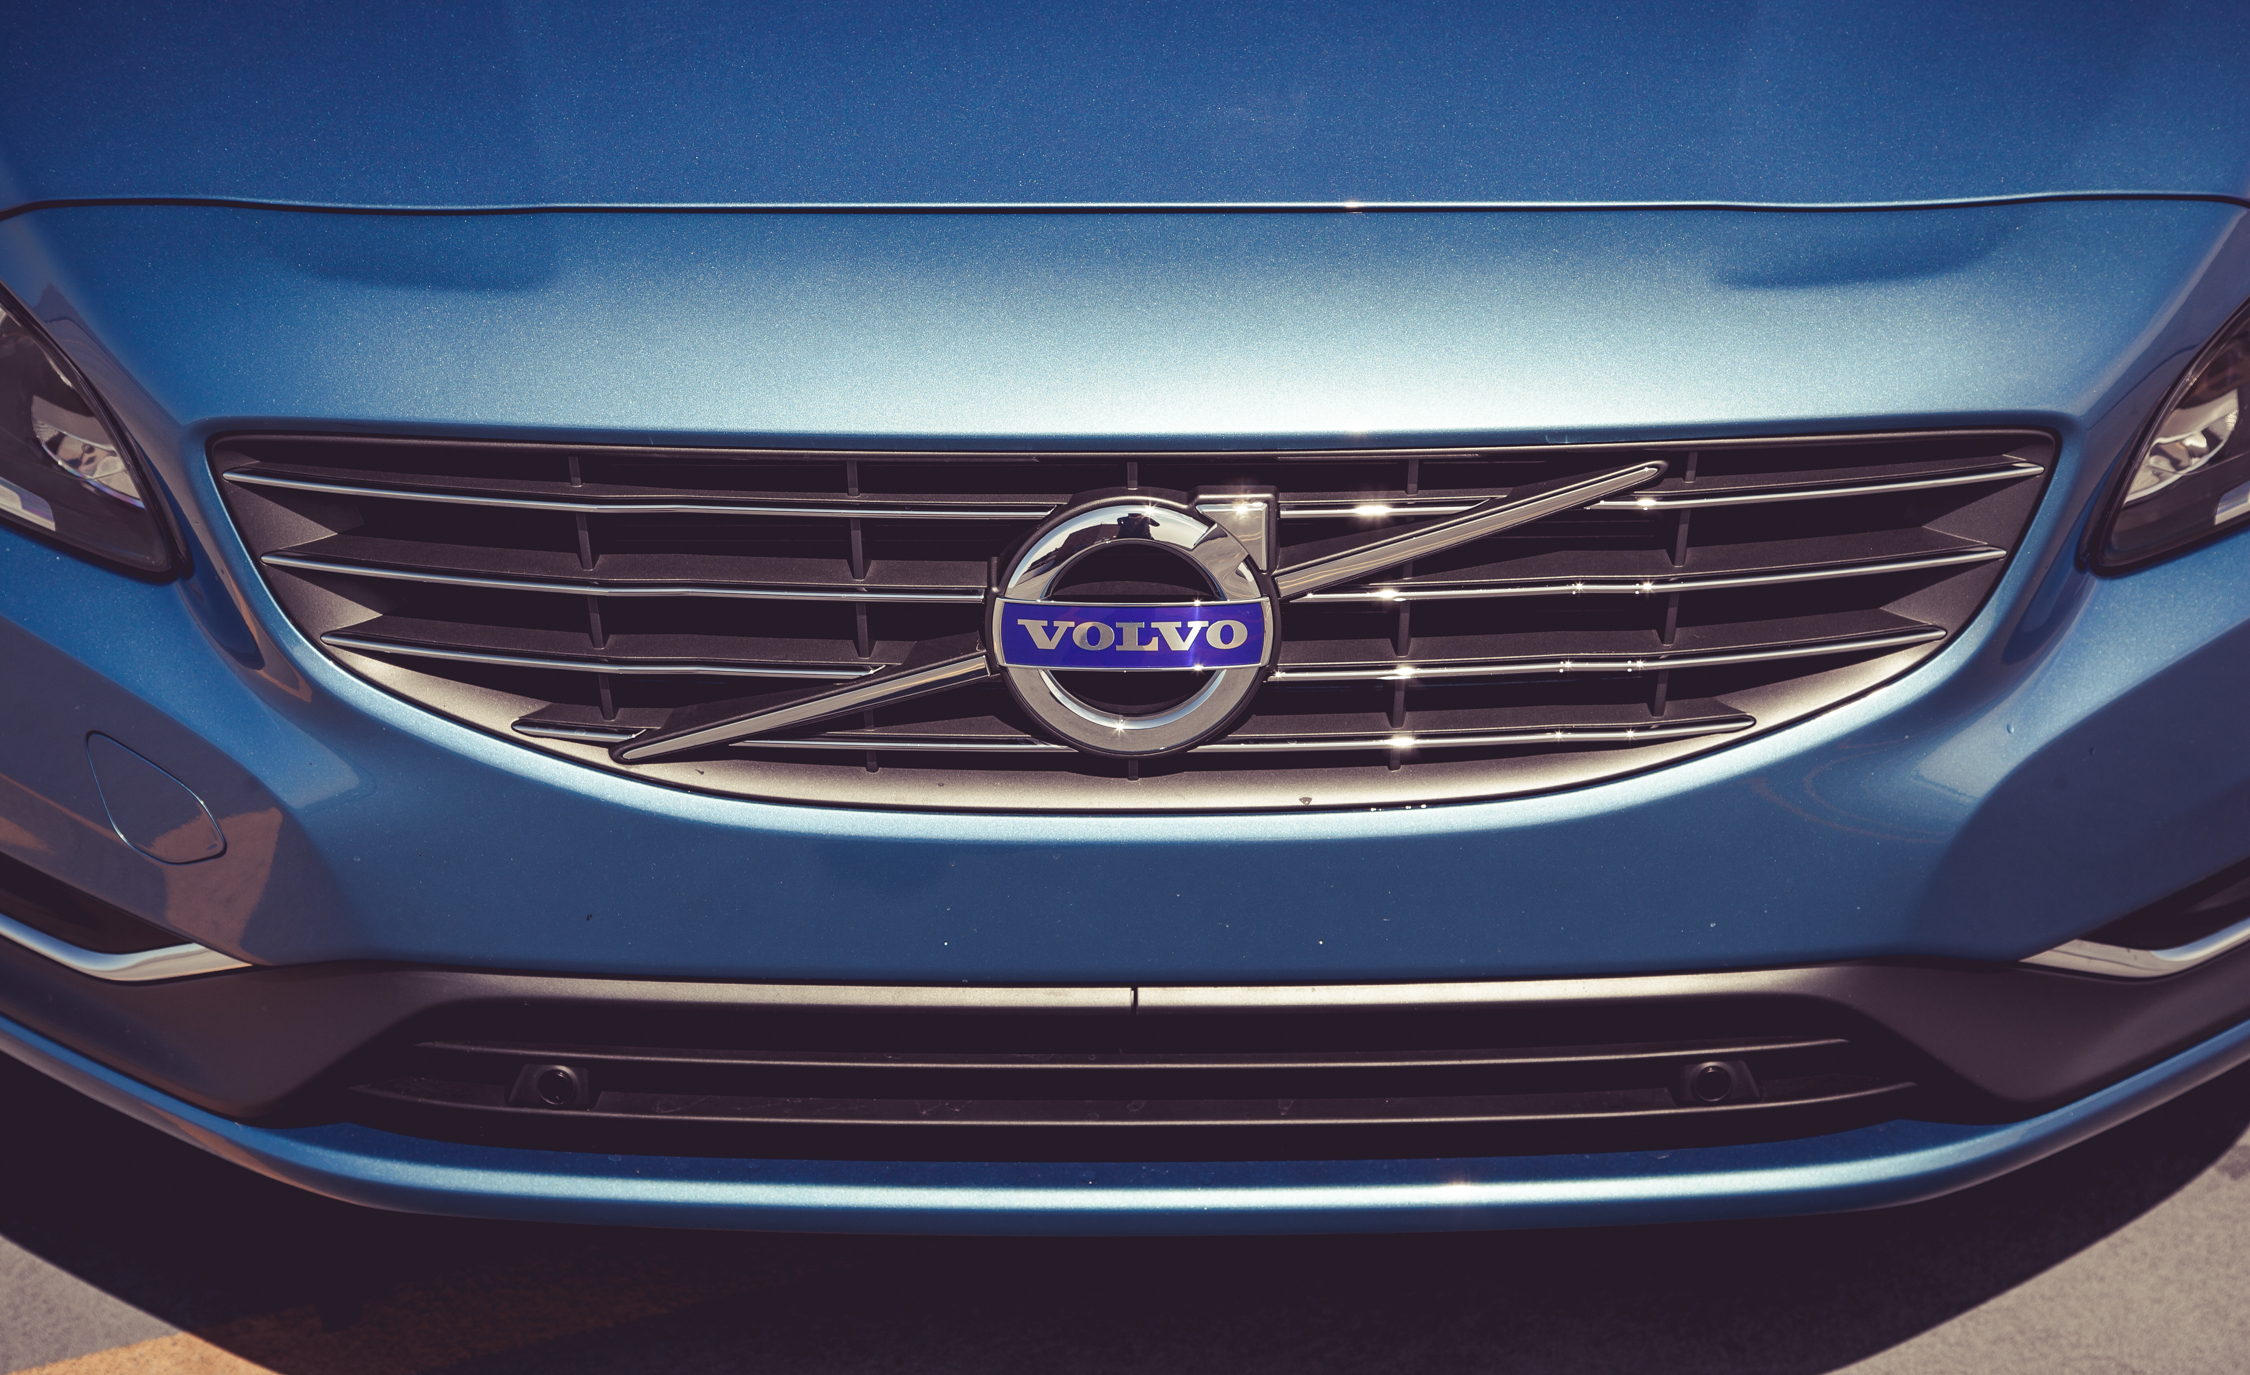 2015 Volvo V60 Grille And Badge (Photo 12 of 38)